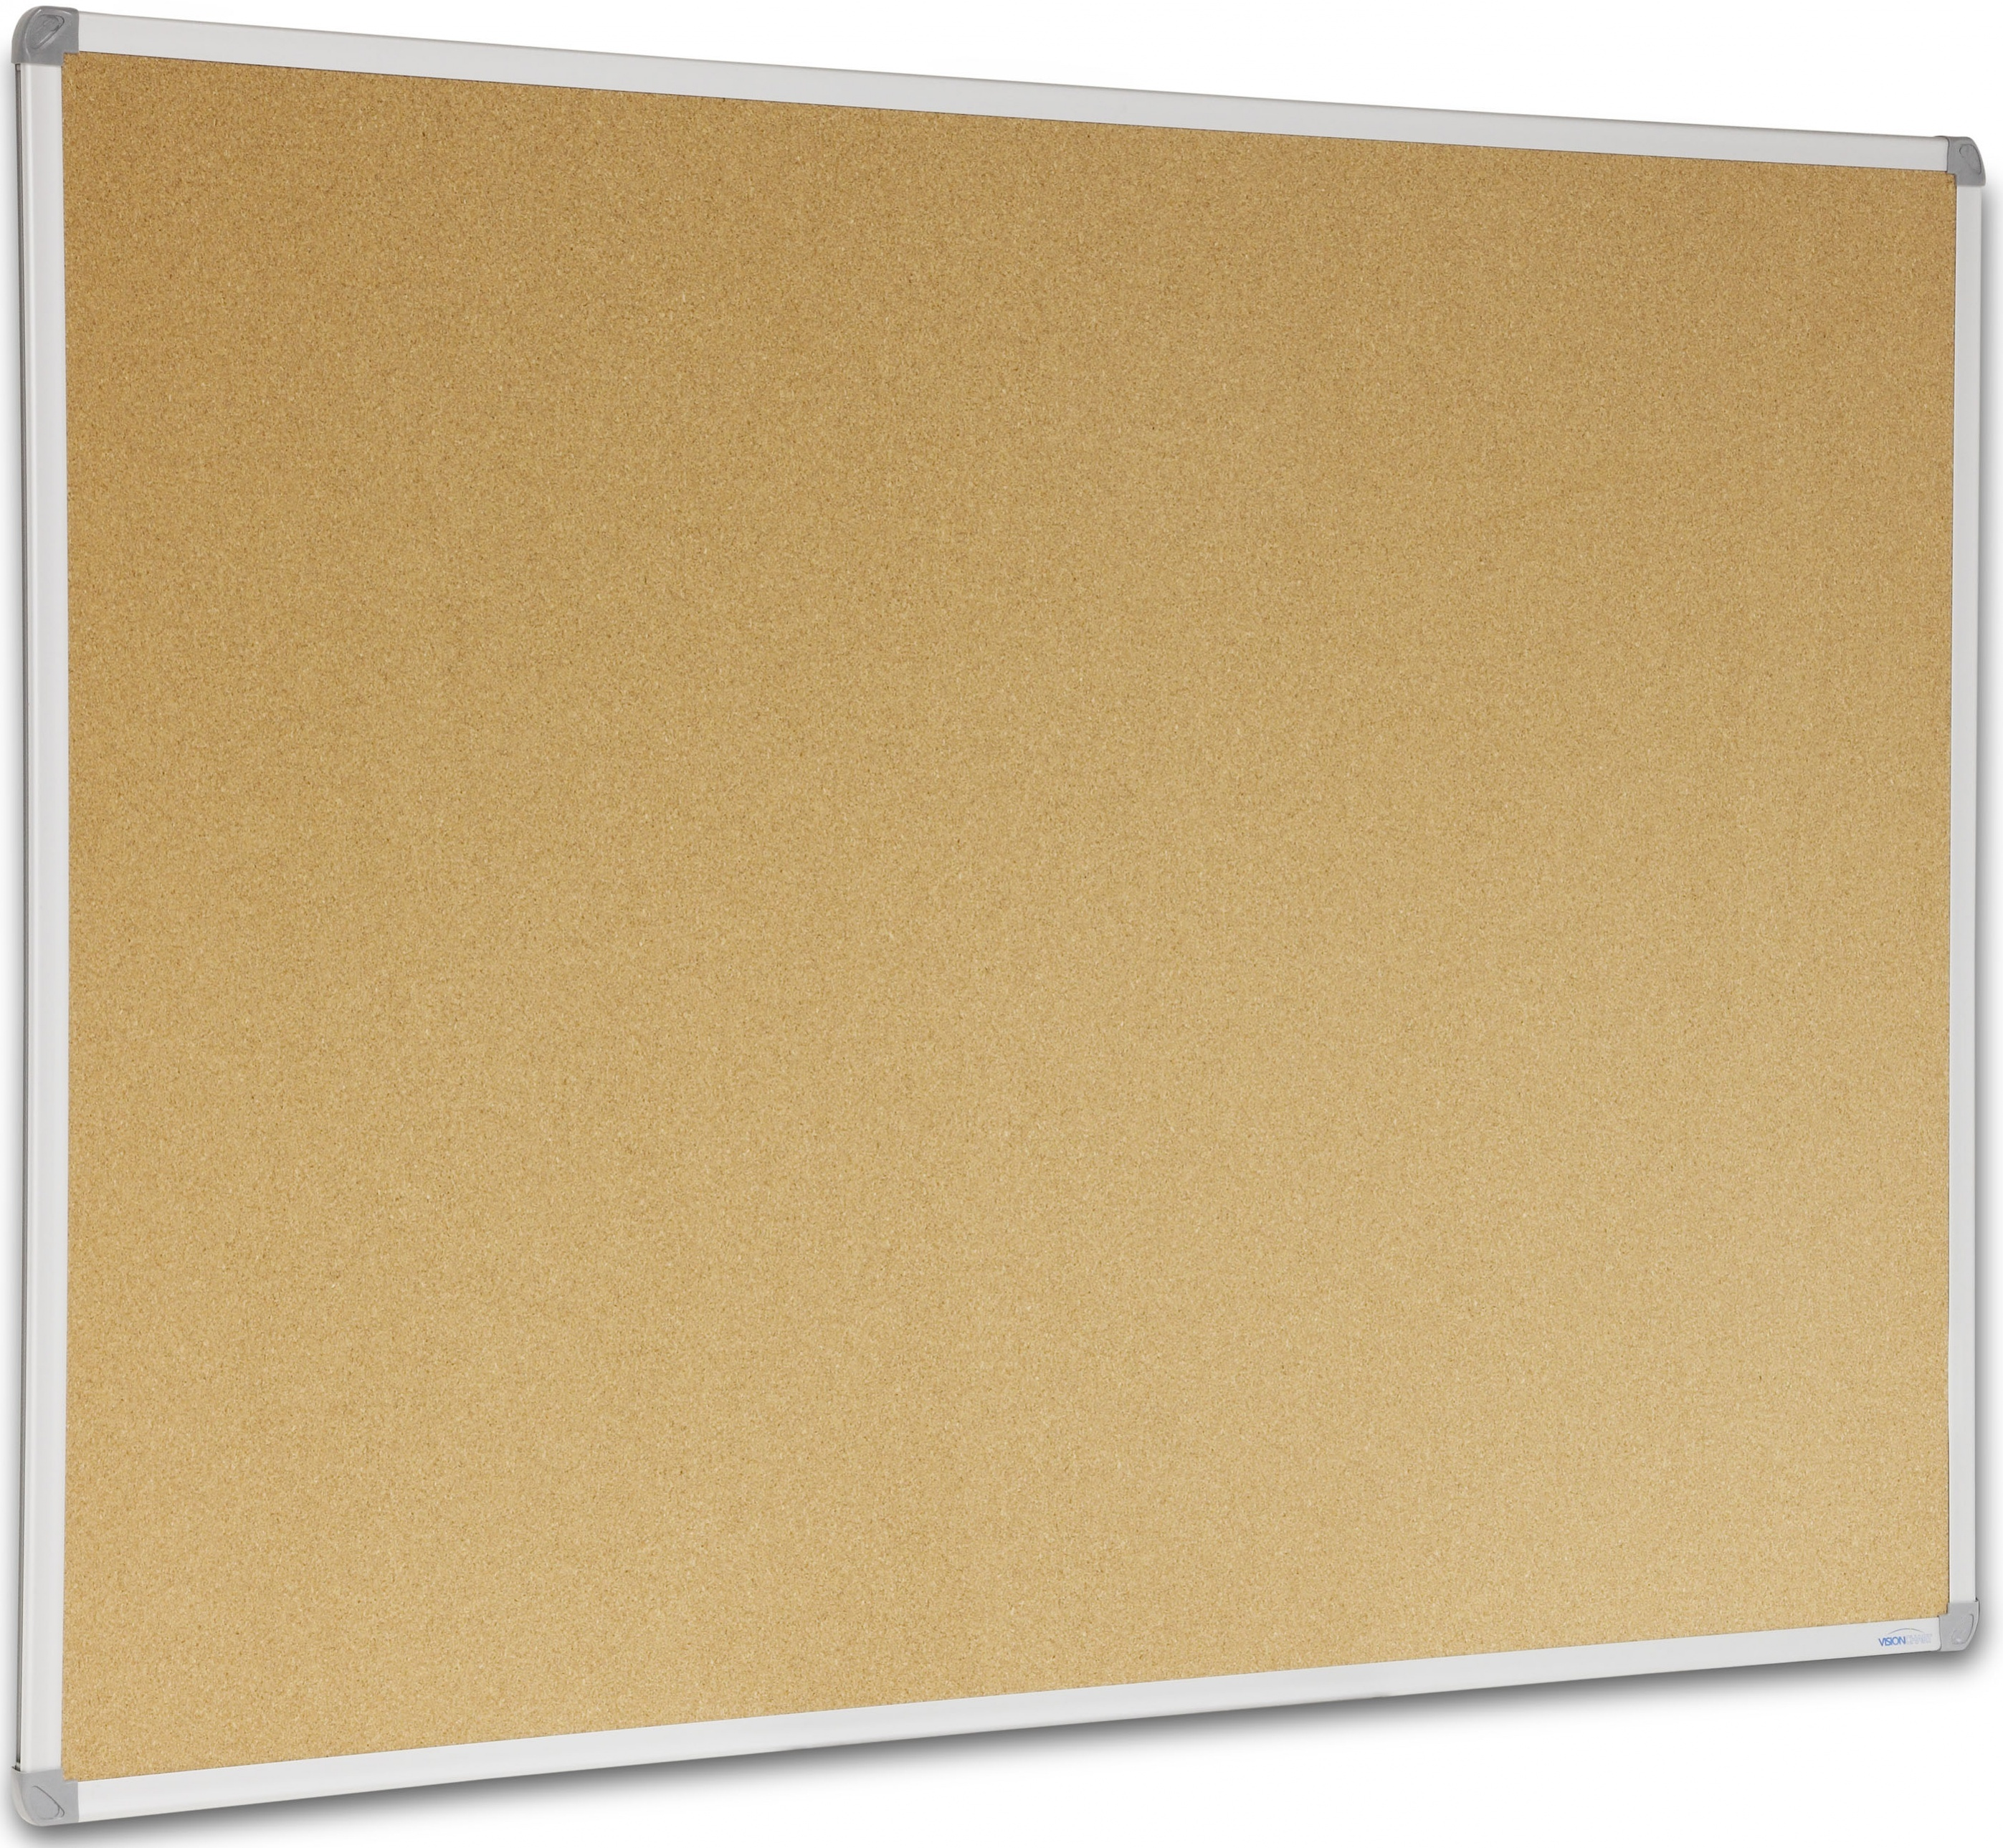 How To Choose A Pinboard Surface